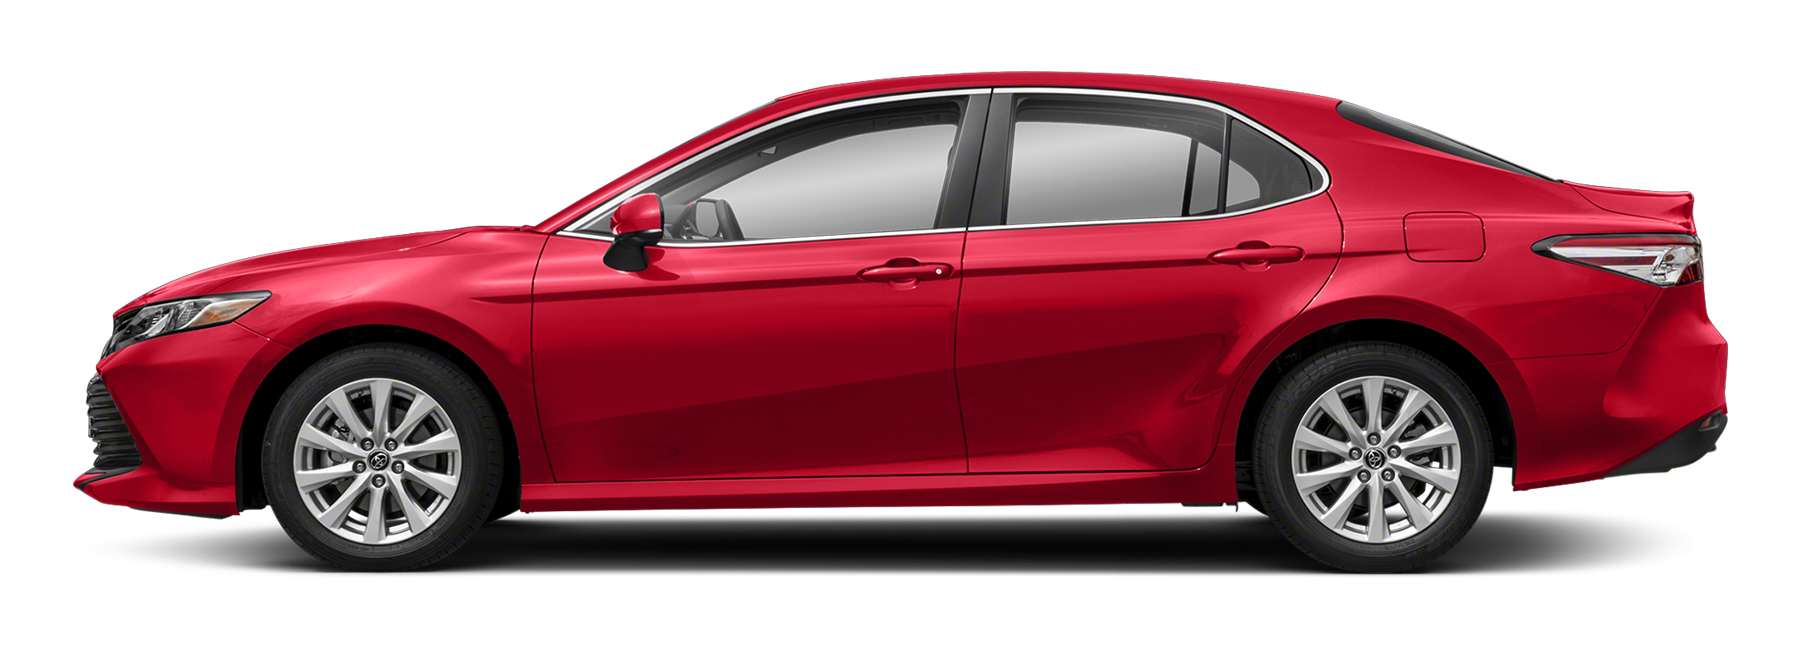 2019 Toyota Camry Side View